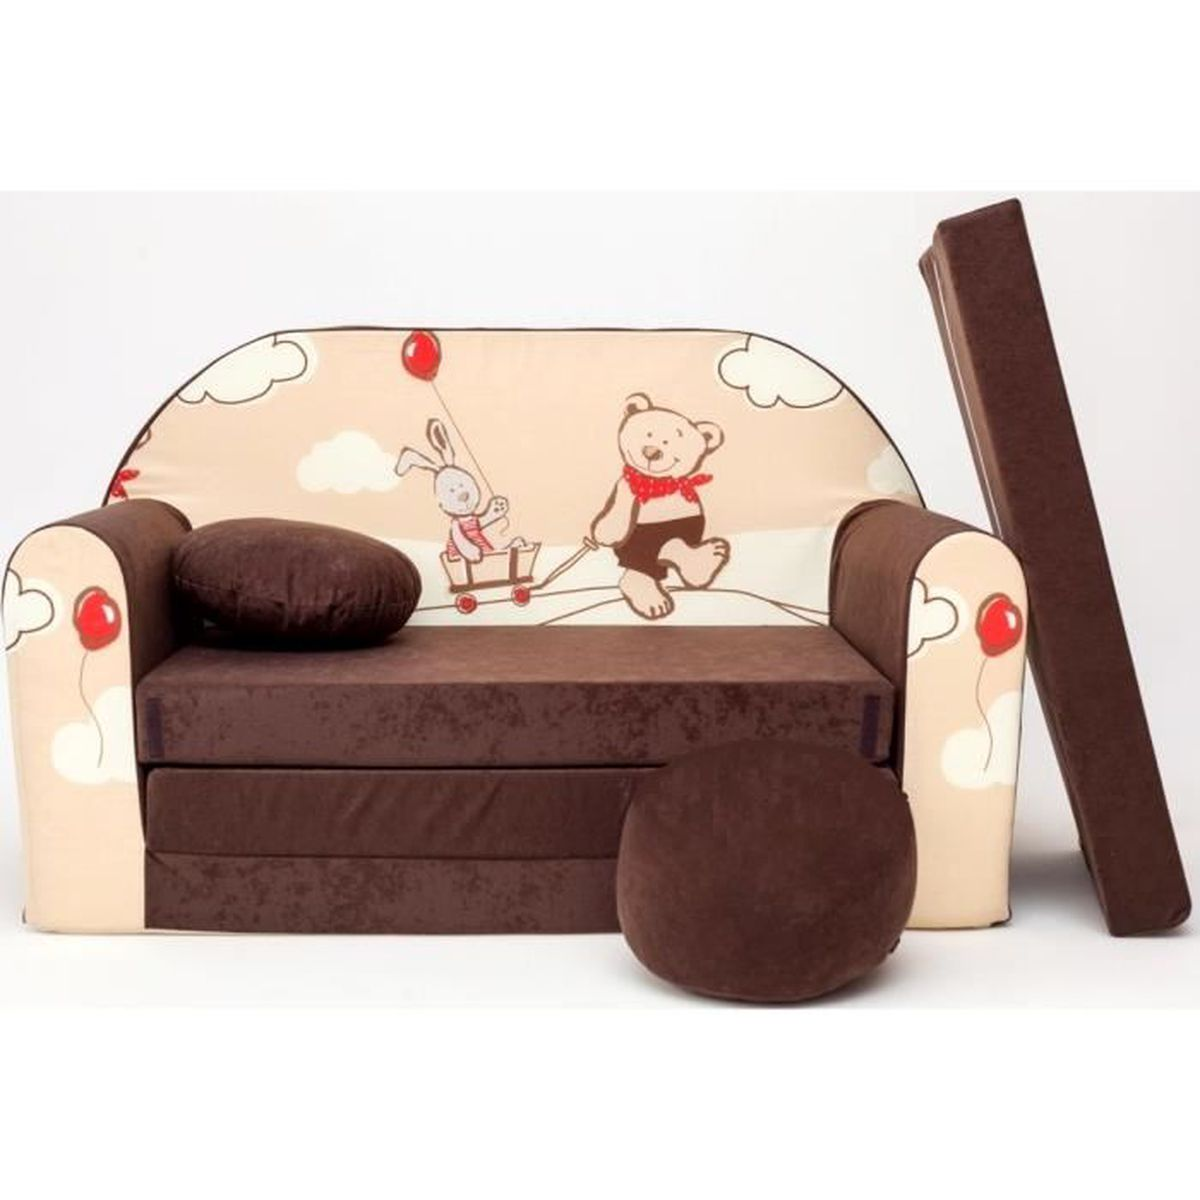 Canape sofa enfant 2 places convertible marron ours et - Canape enfant places ...